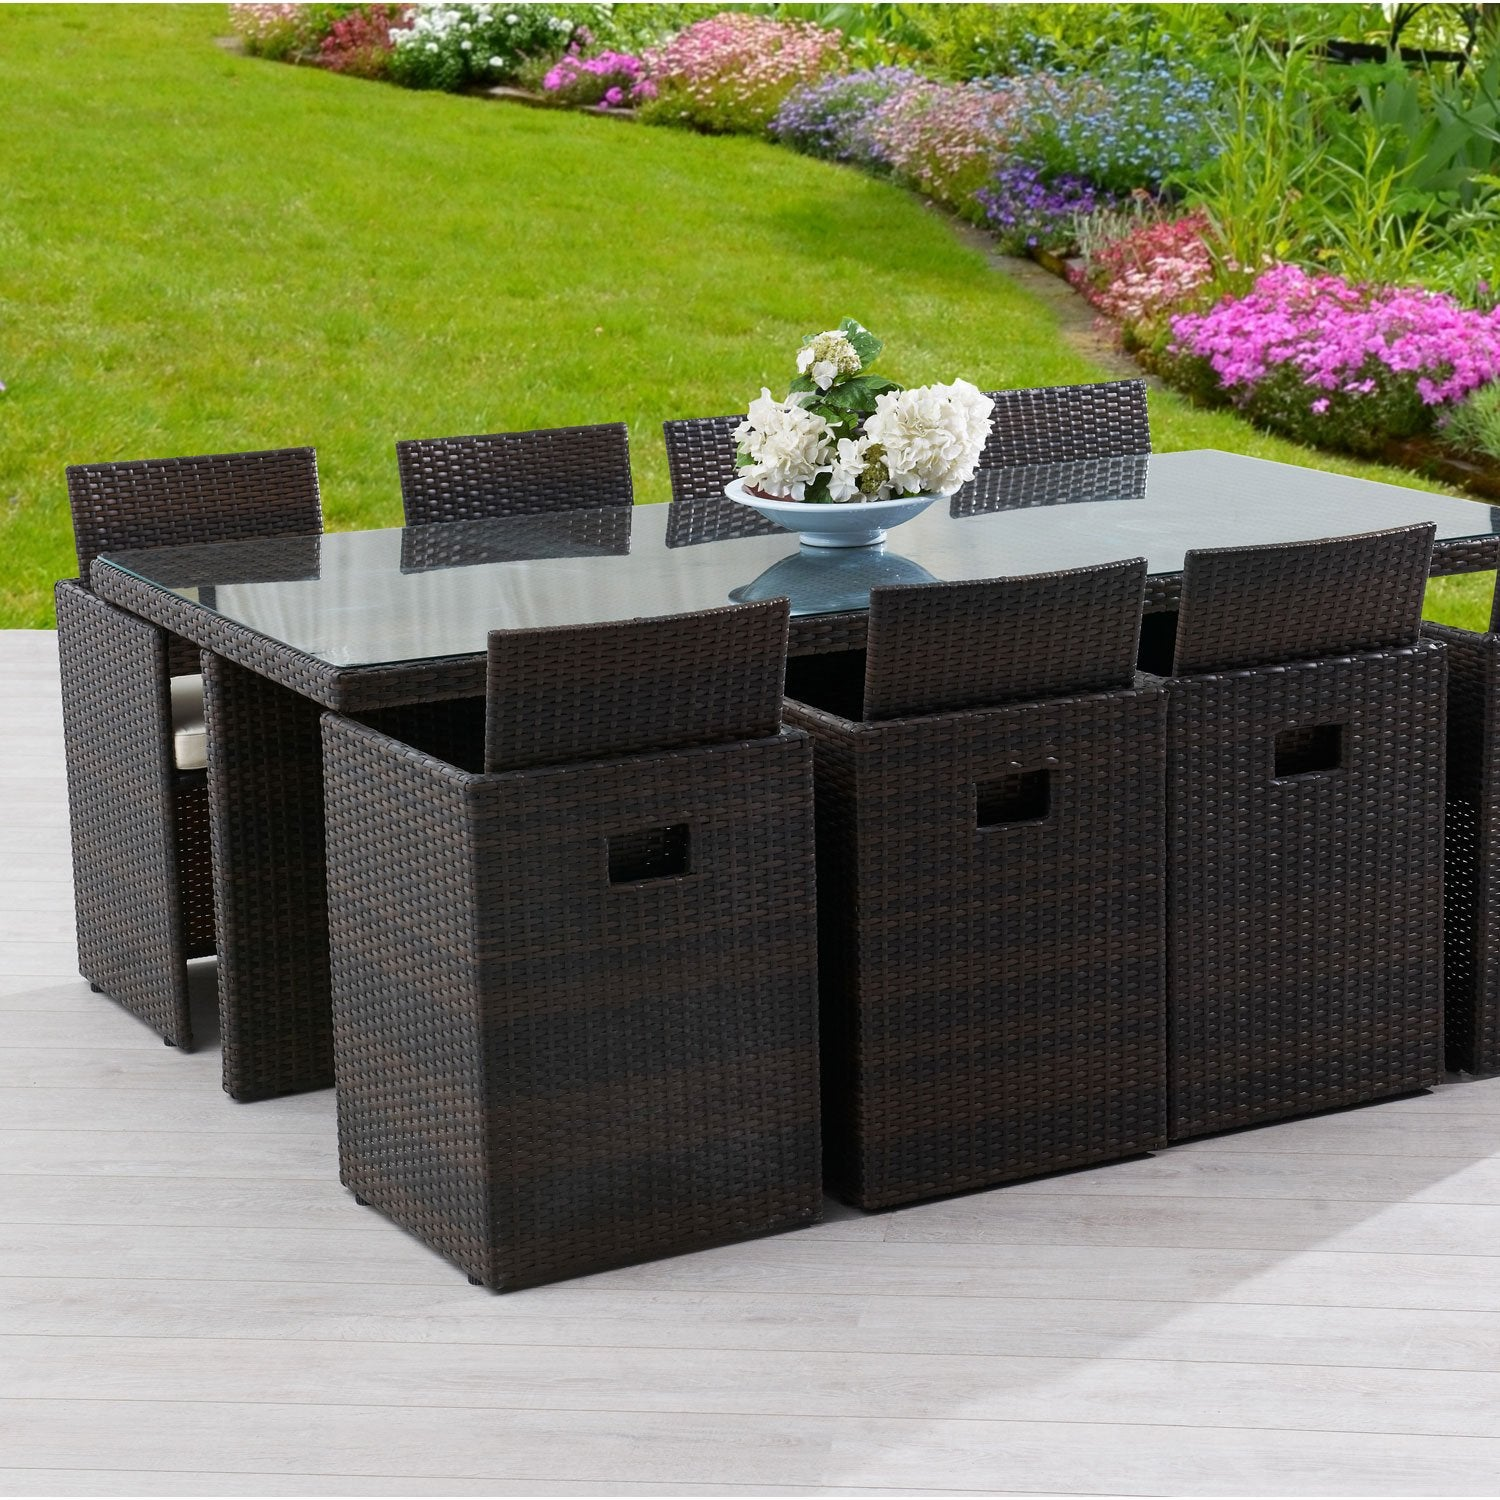 Salon de jardin encastrable r sine tress e marron 1 table for Table de terrasse pas cher